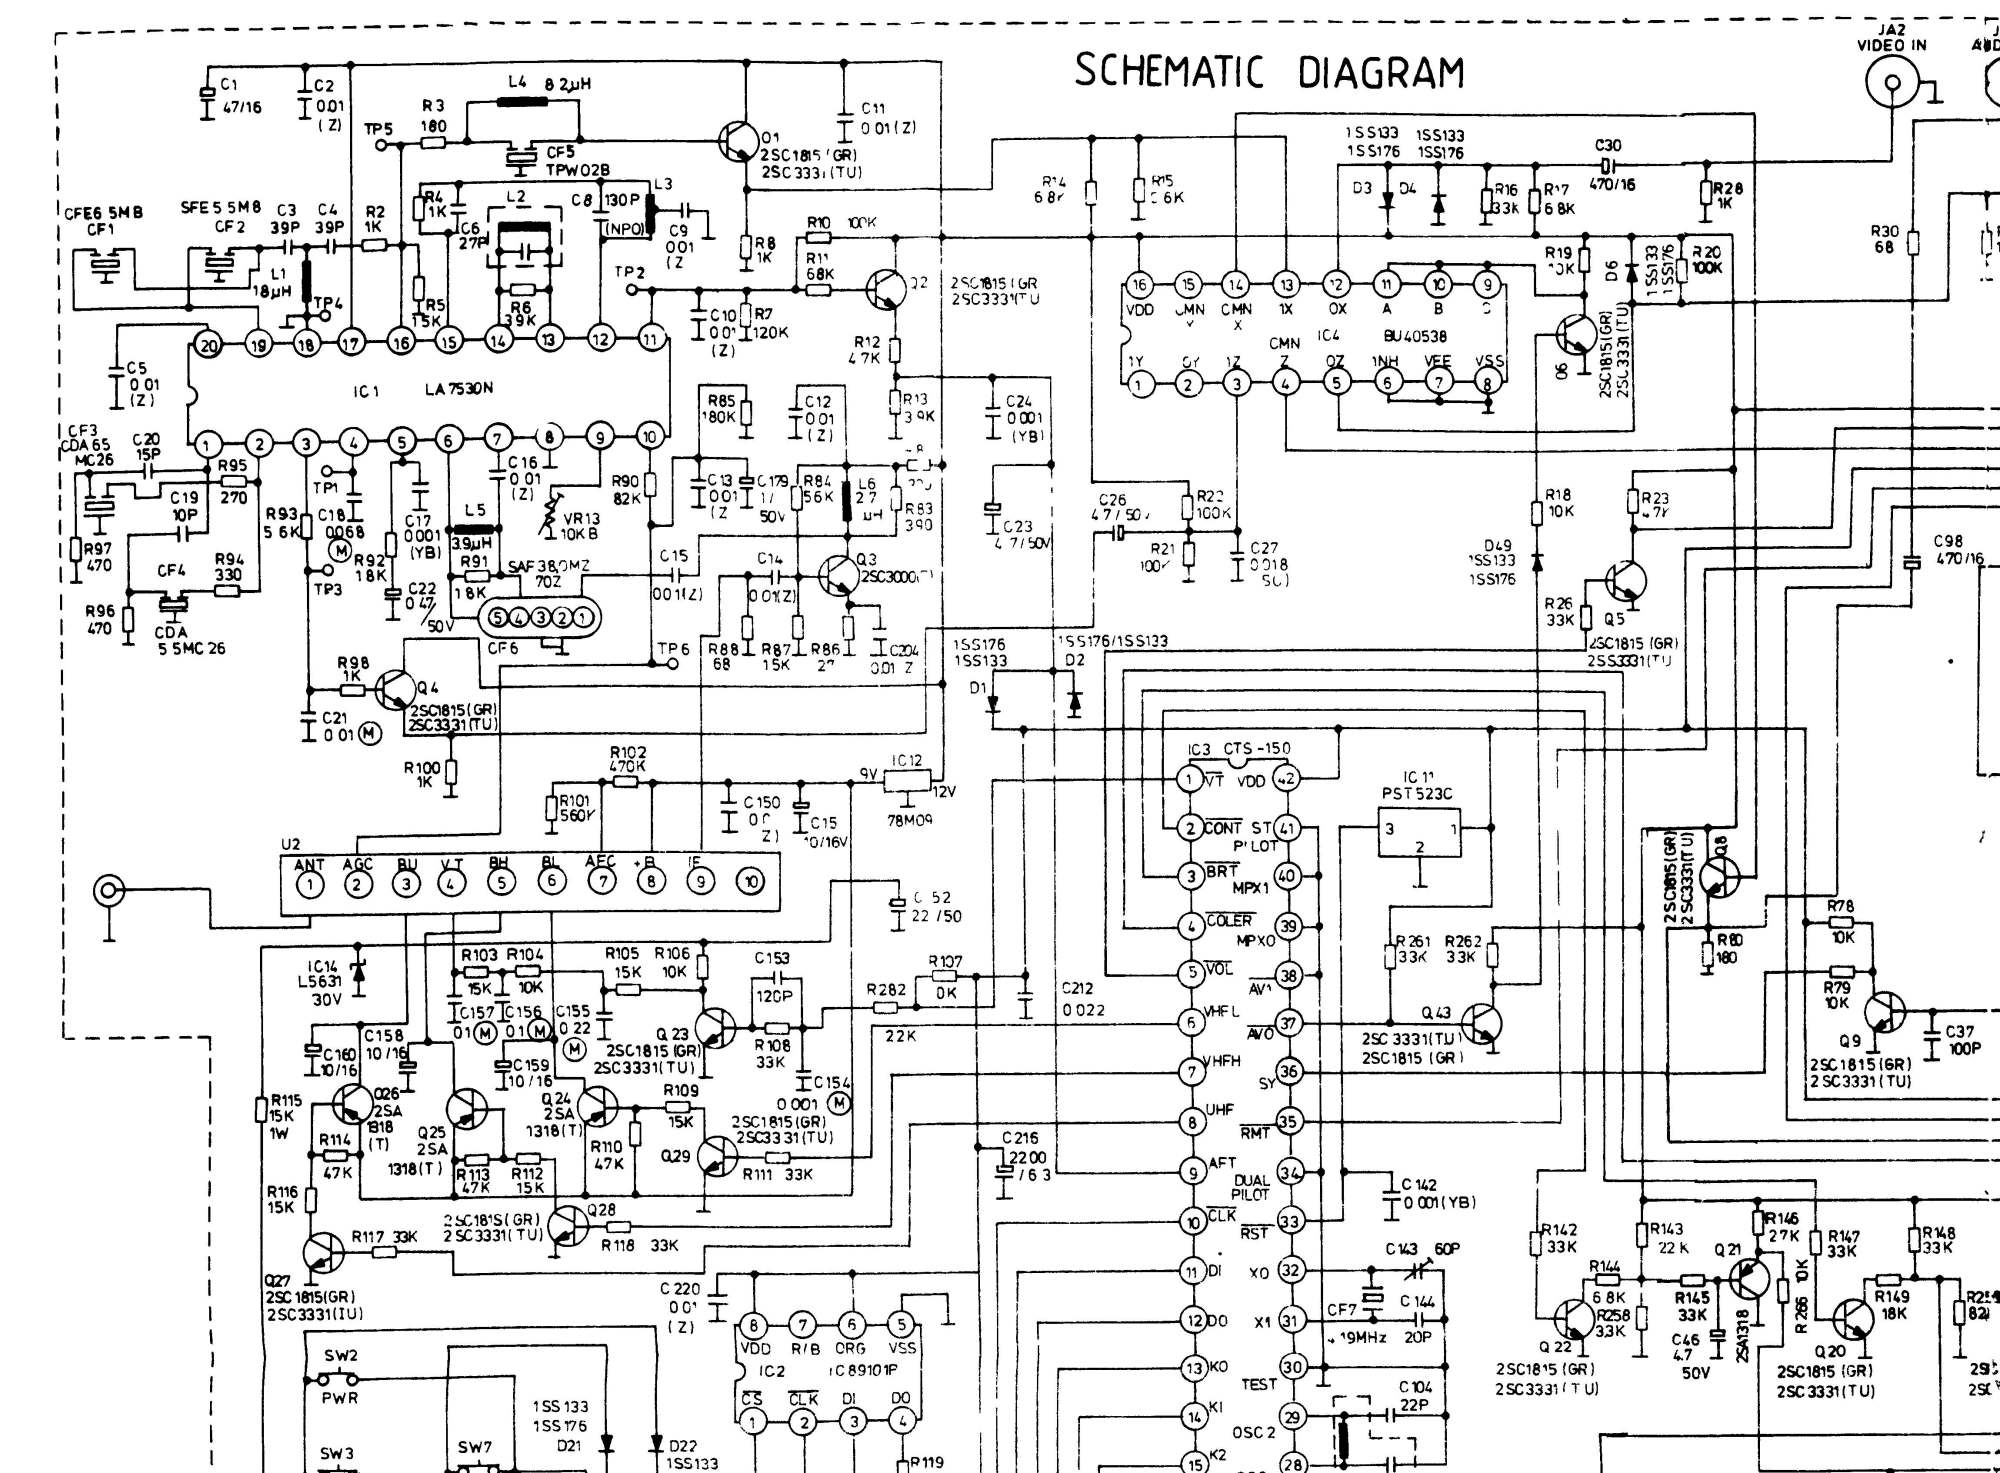 hight resolution of crt tv schematic diagram wiring diagram advance philips crt tv schematic diagram crt tv schematic diagram